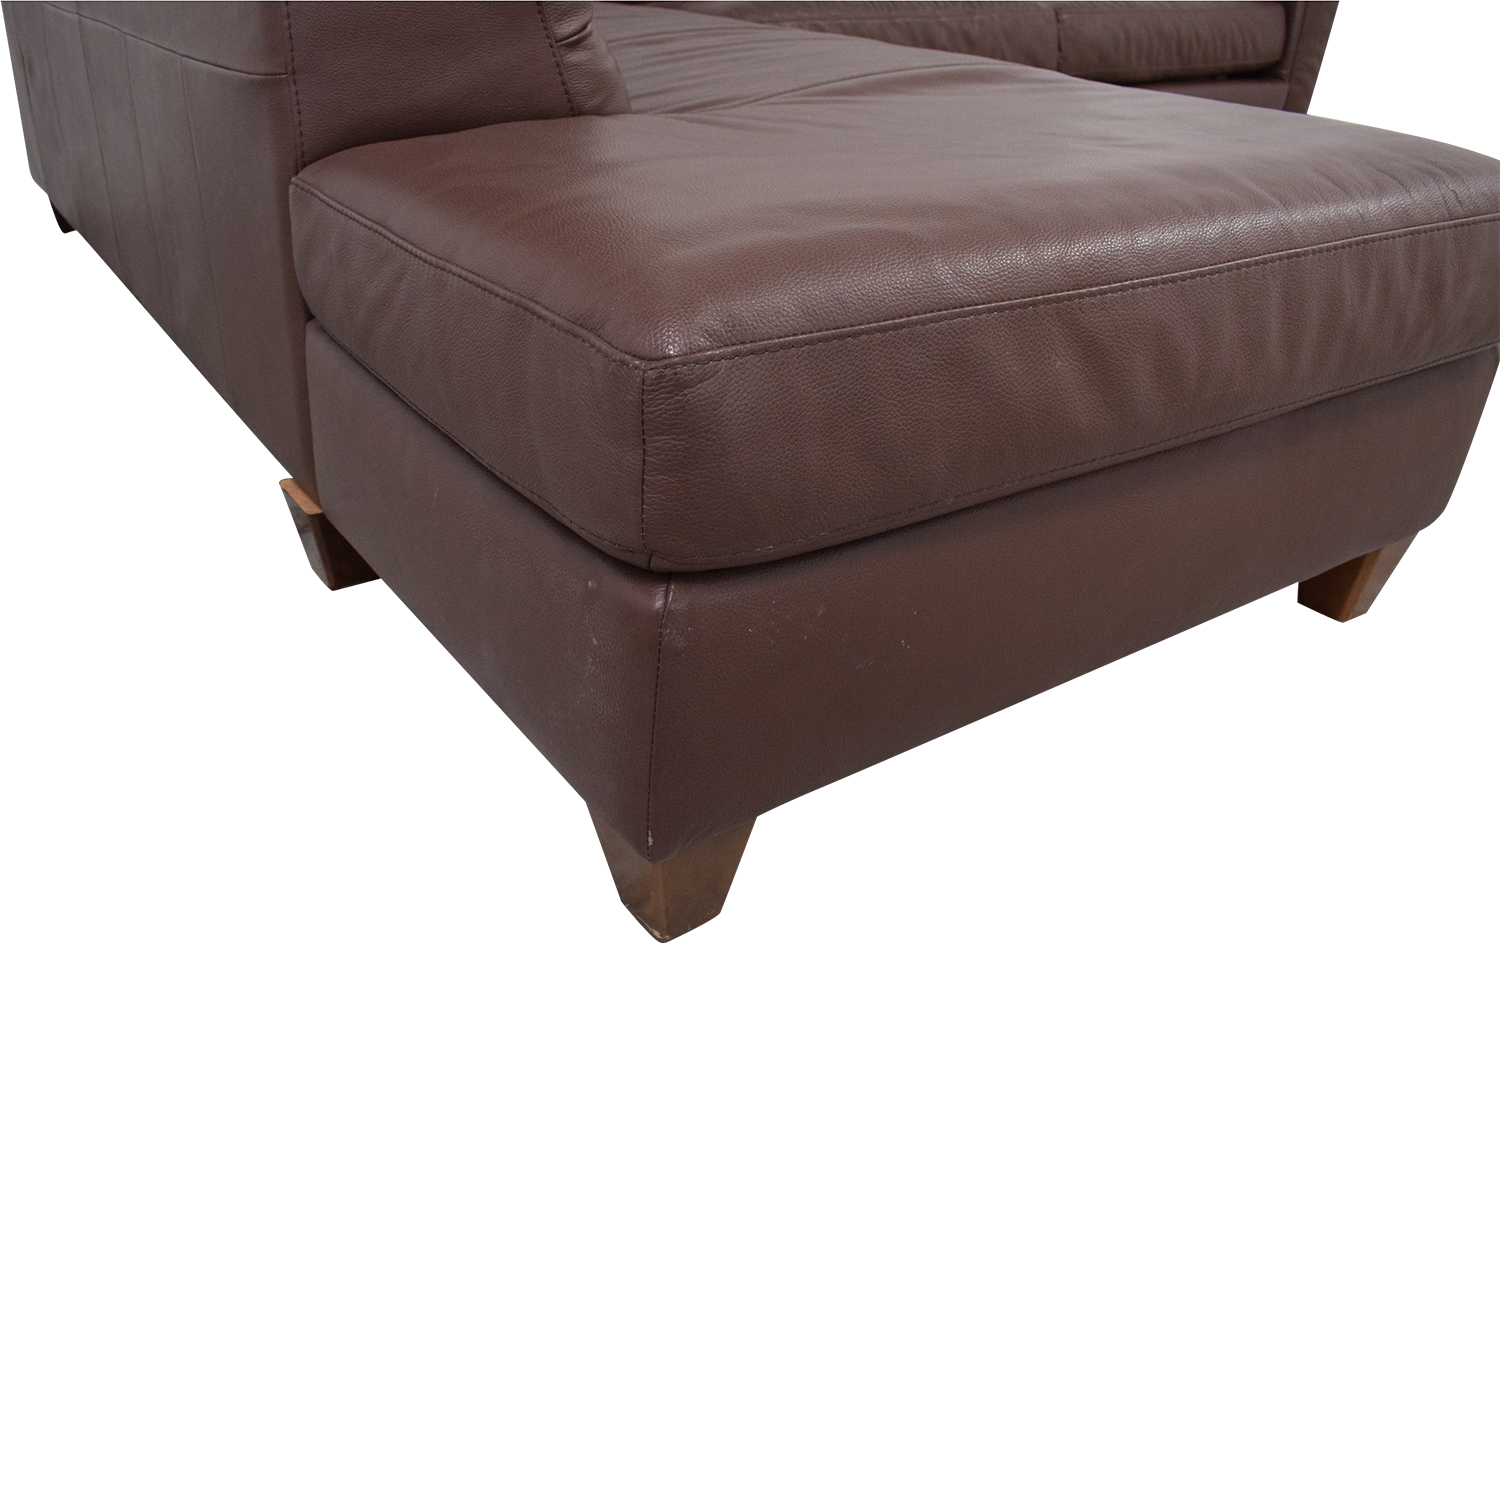 Italsofa Italsofa Sectional Sleeper Sofa with Chaise dimensions